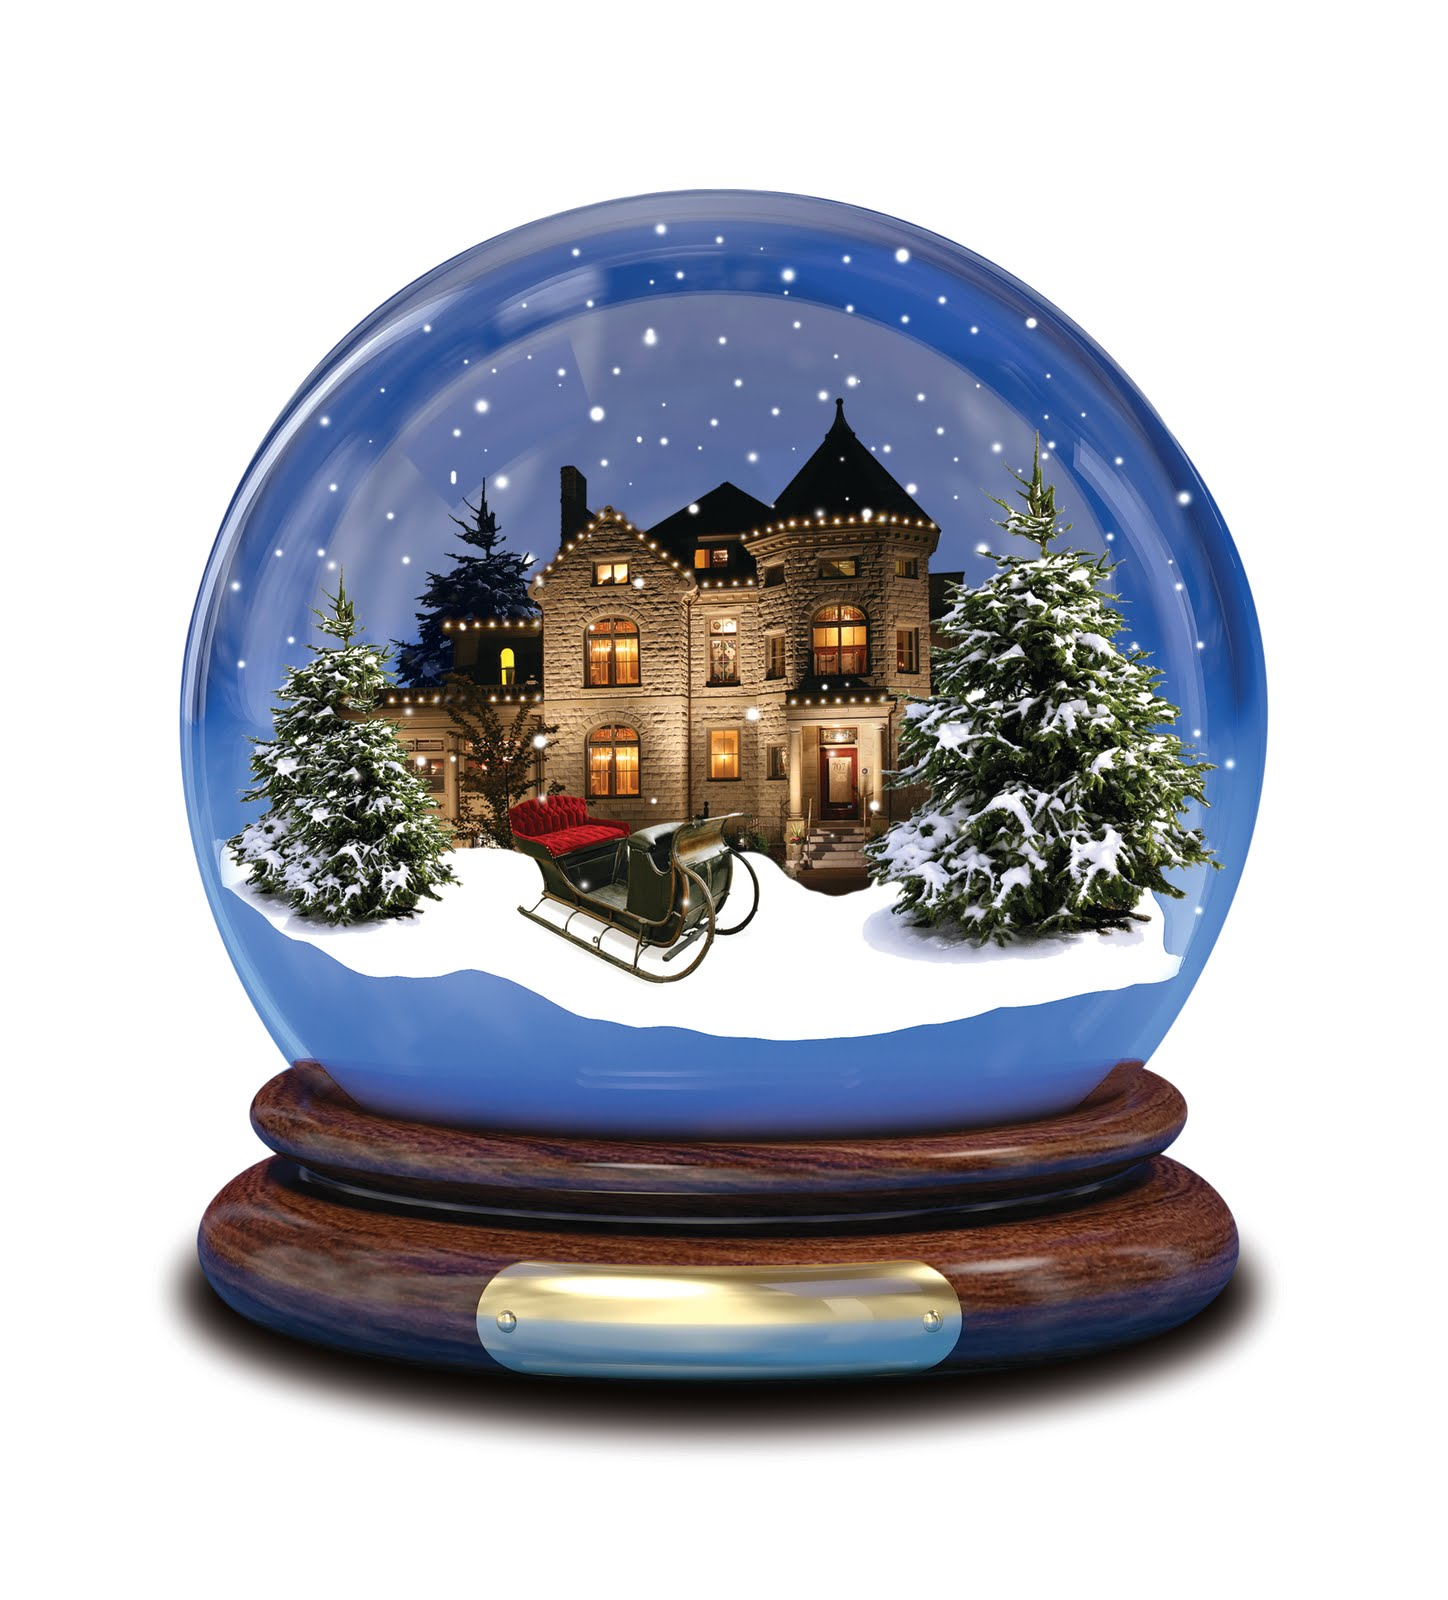 Snow Miser's Snow Globe Challenge | The Return of the Modern ...